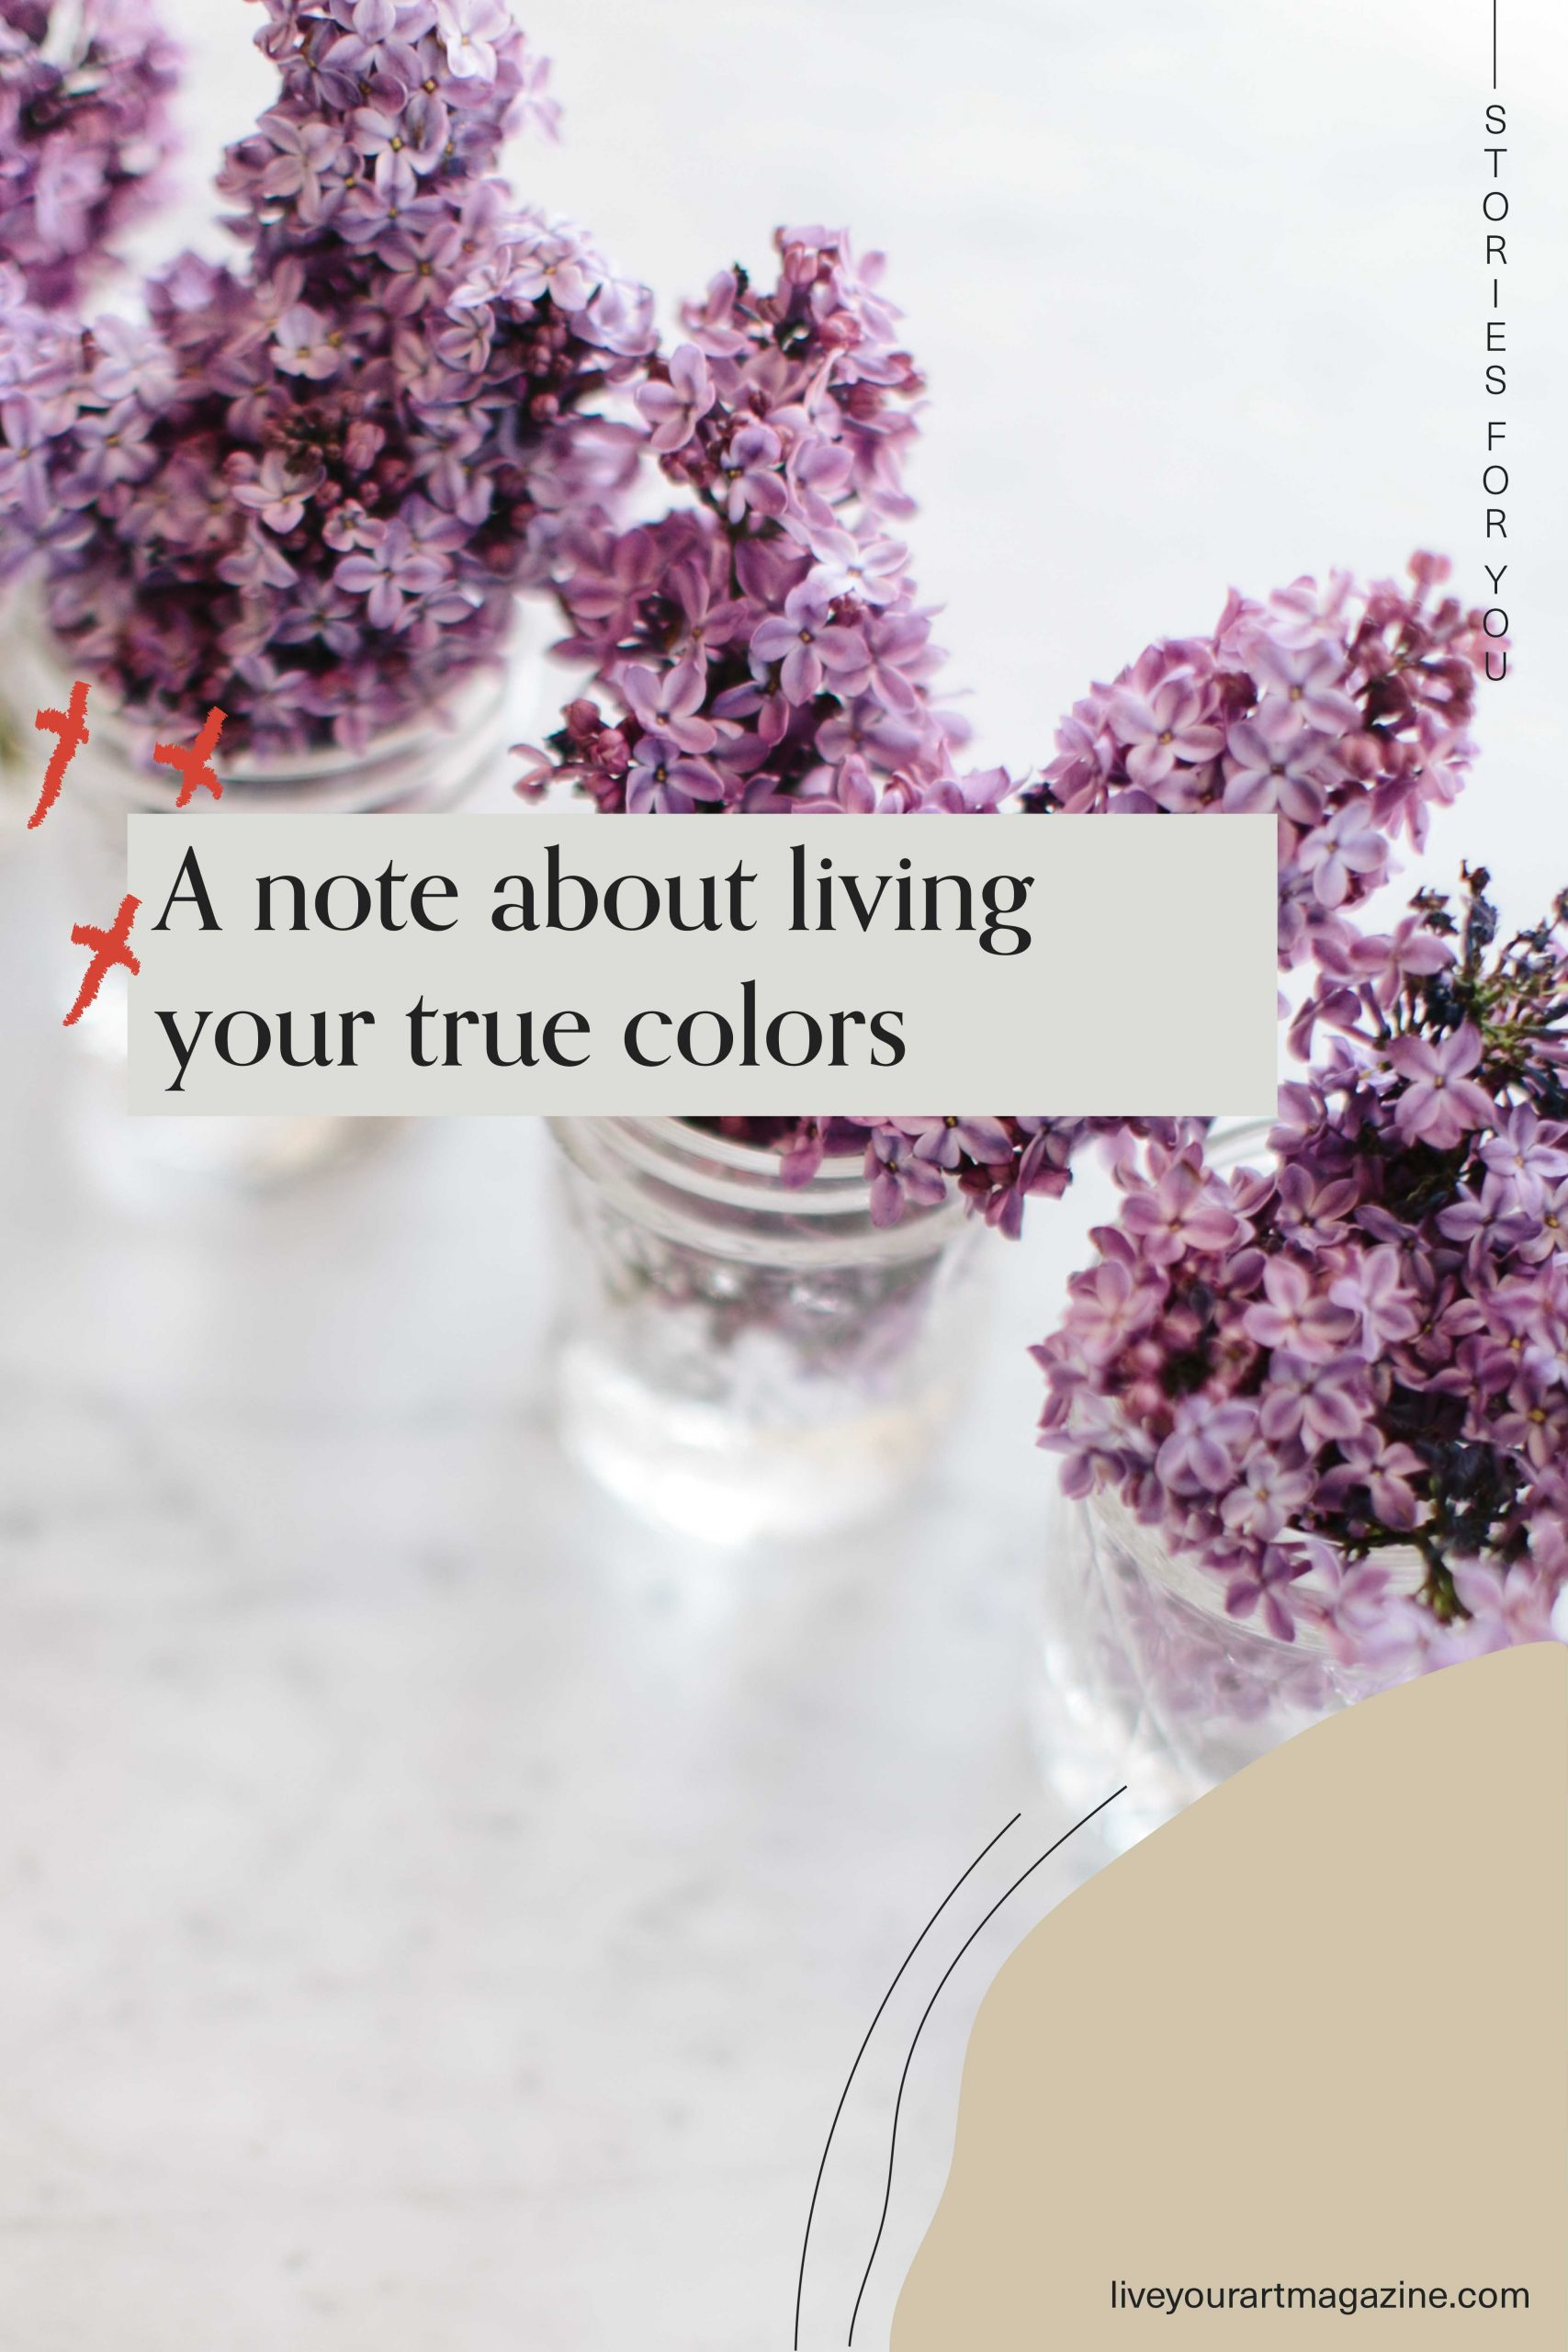 A note about living your true colors